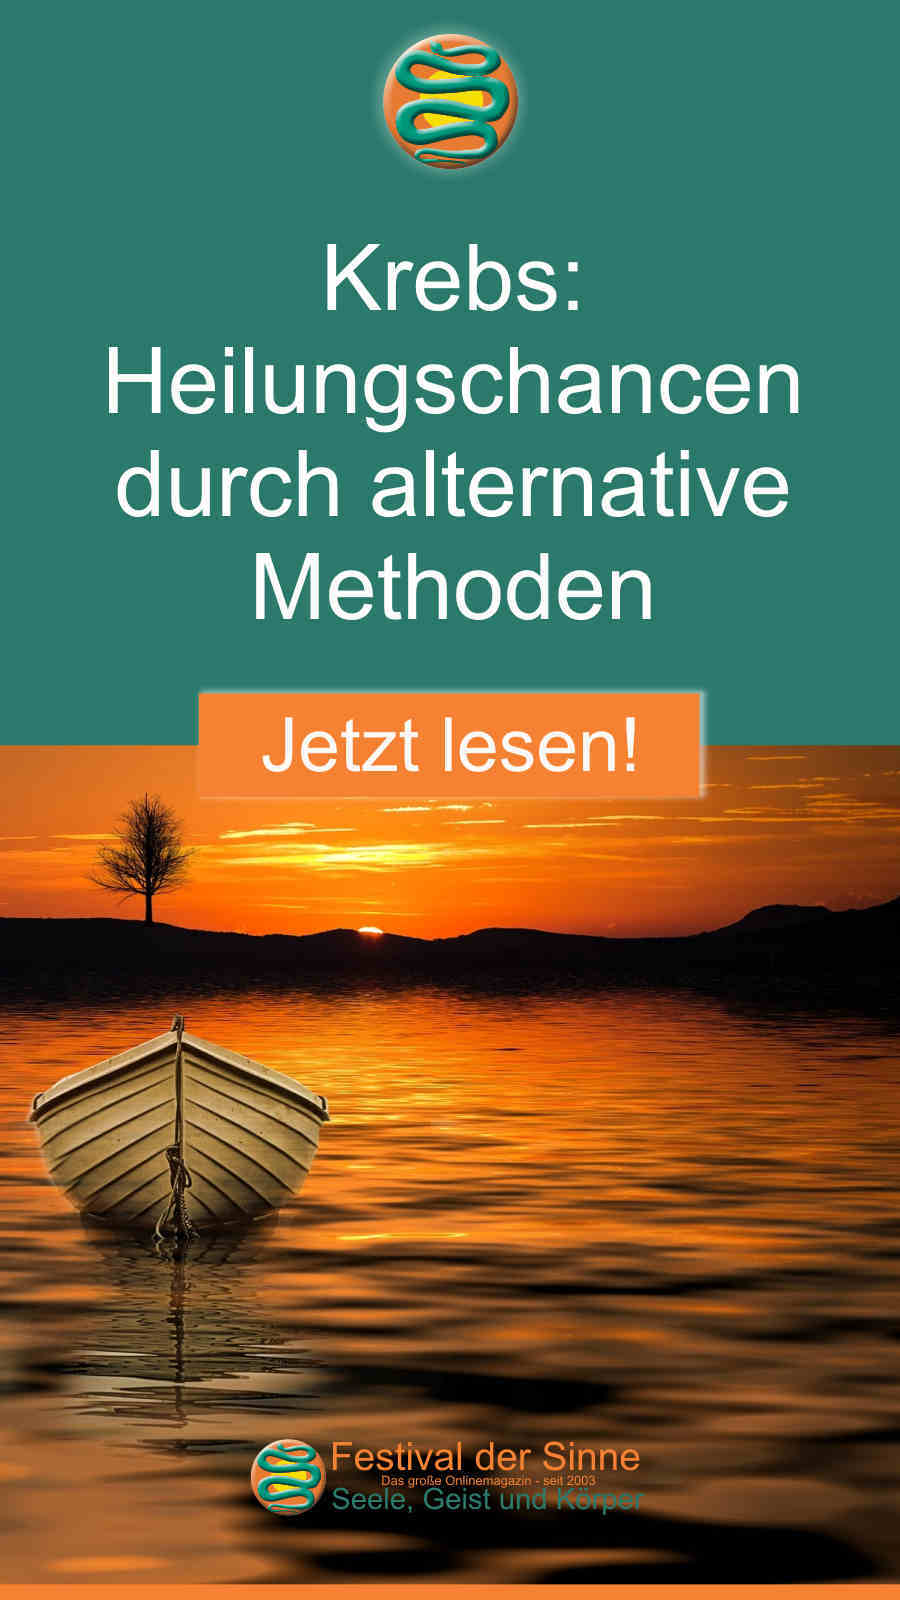 Krebs: Heilungschancen durch alternative Methoden (PIN)